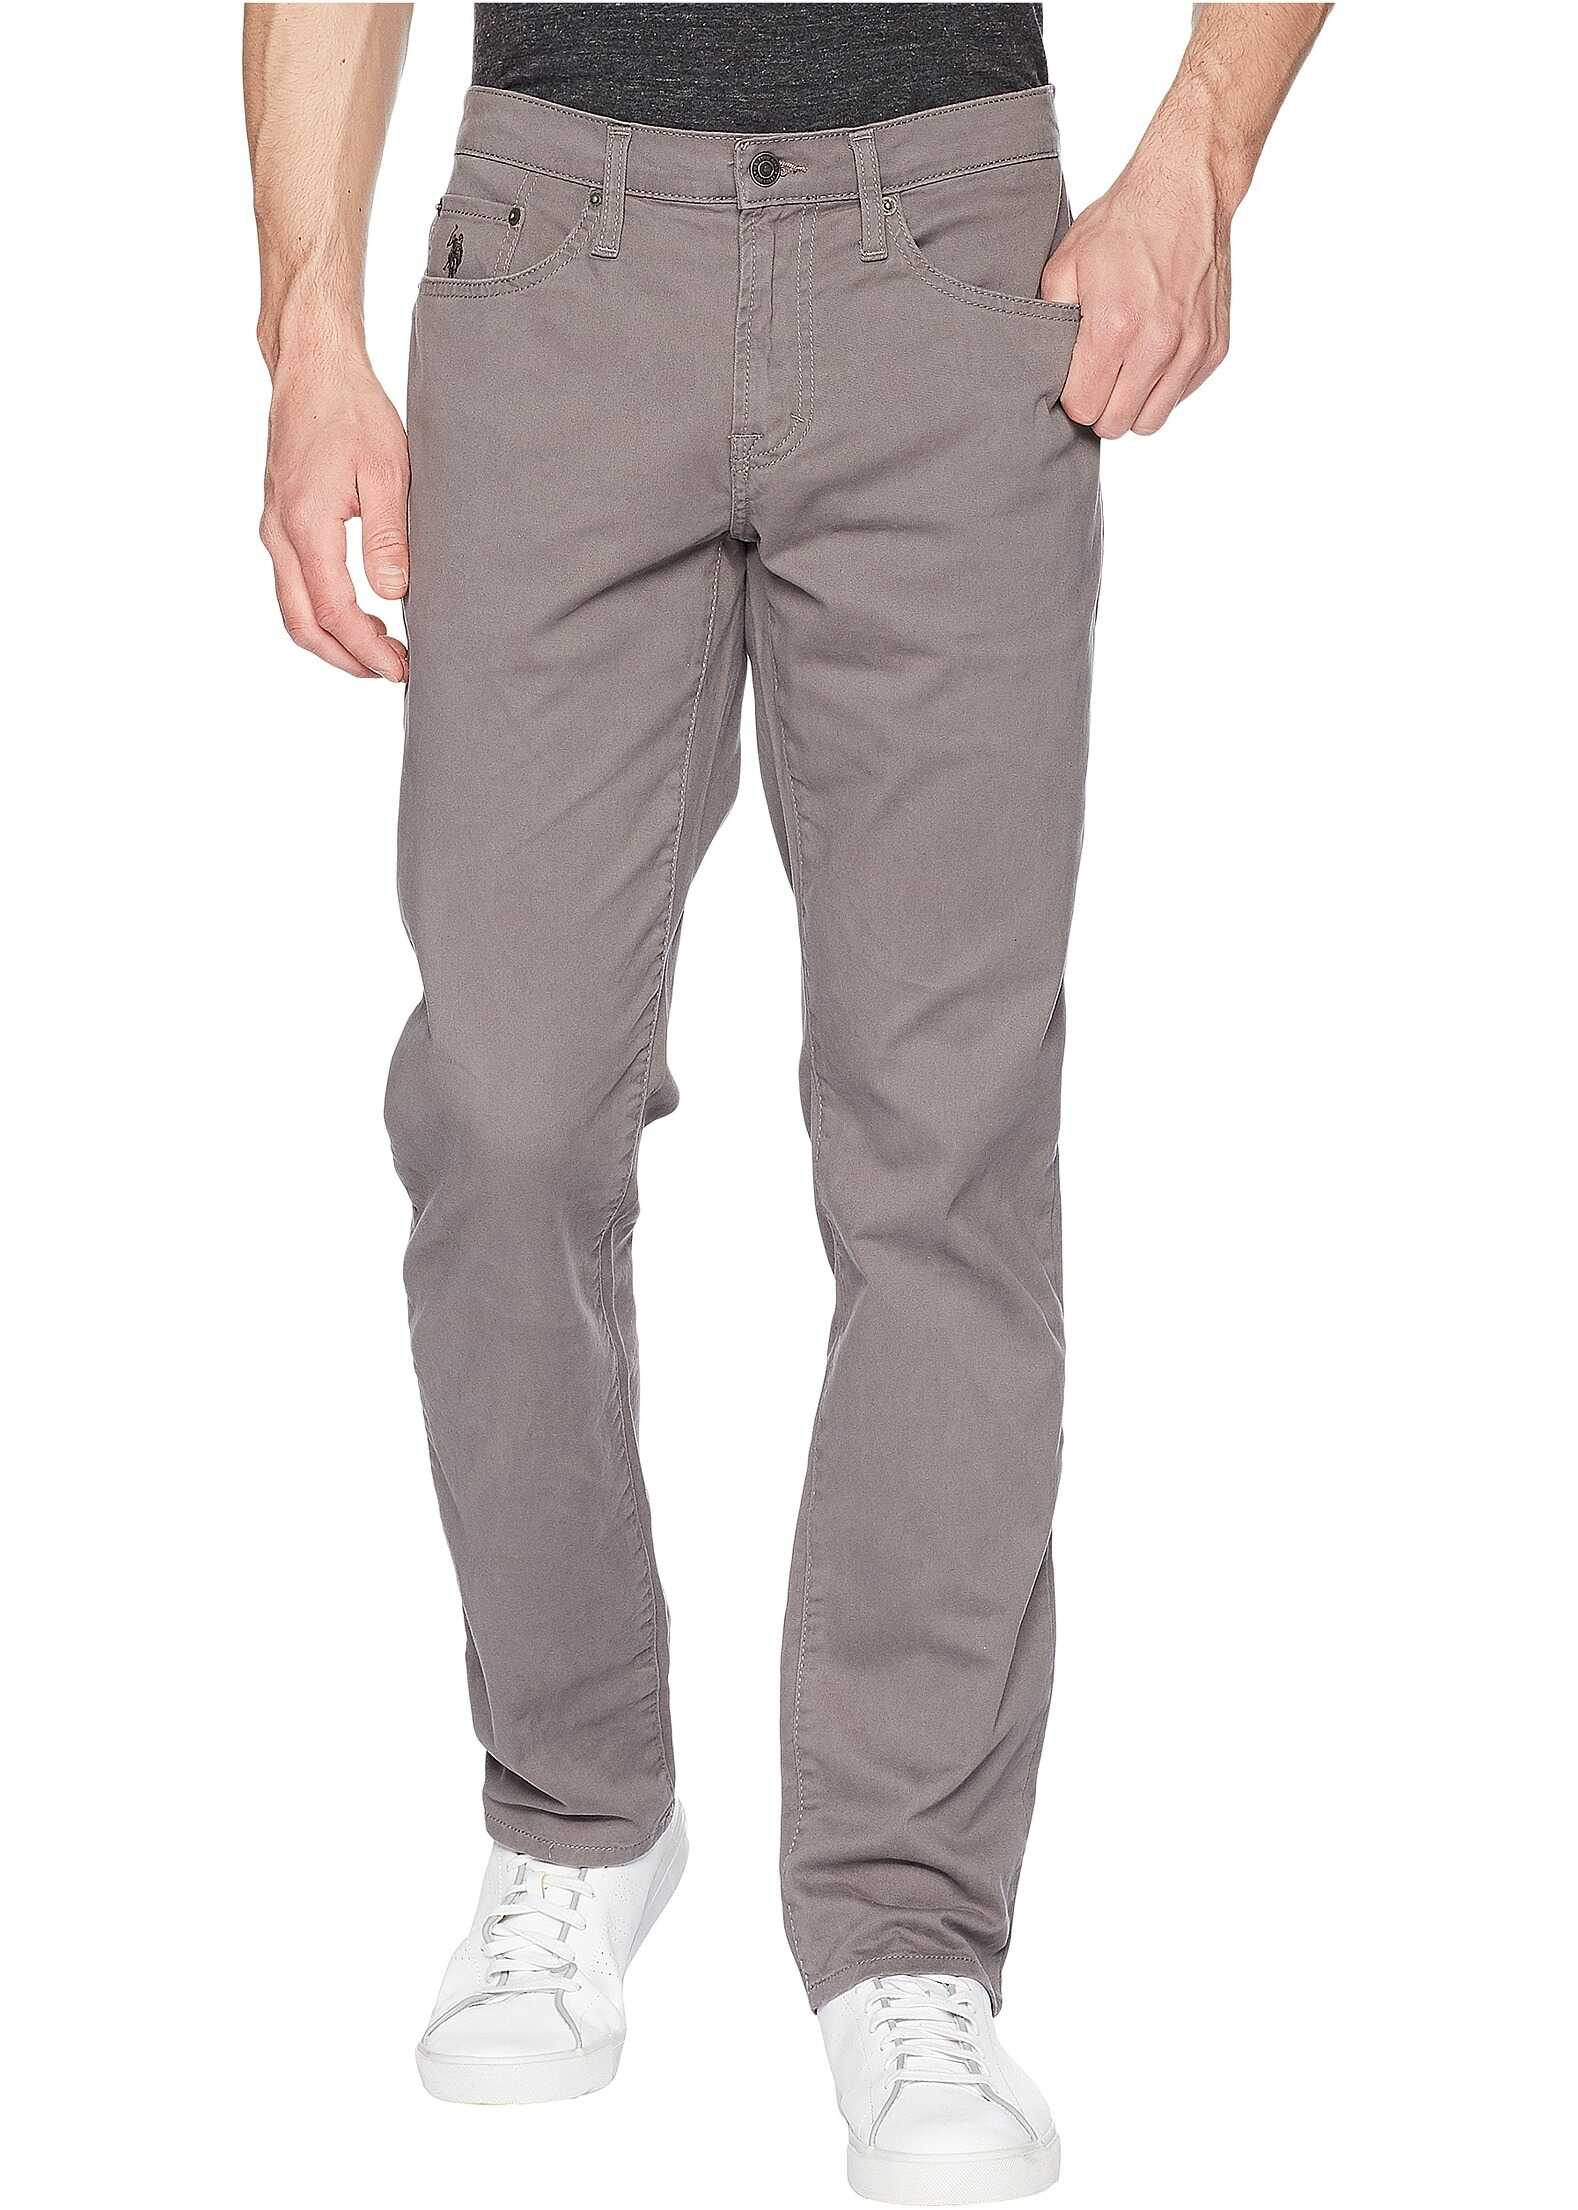 U.S. POLO ASSN. Slim Straight Stretch Five-Pocket Pants Grey Matter